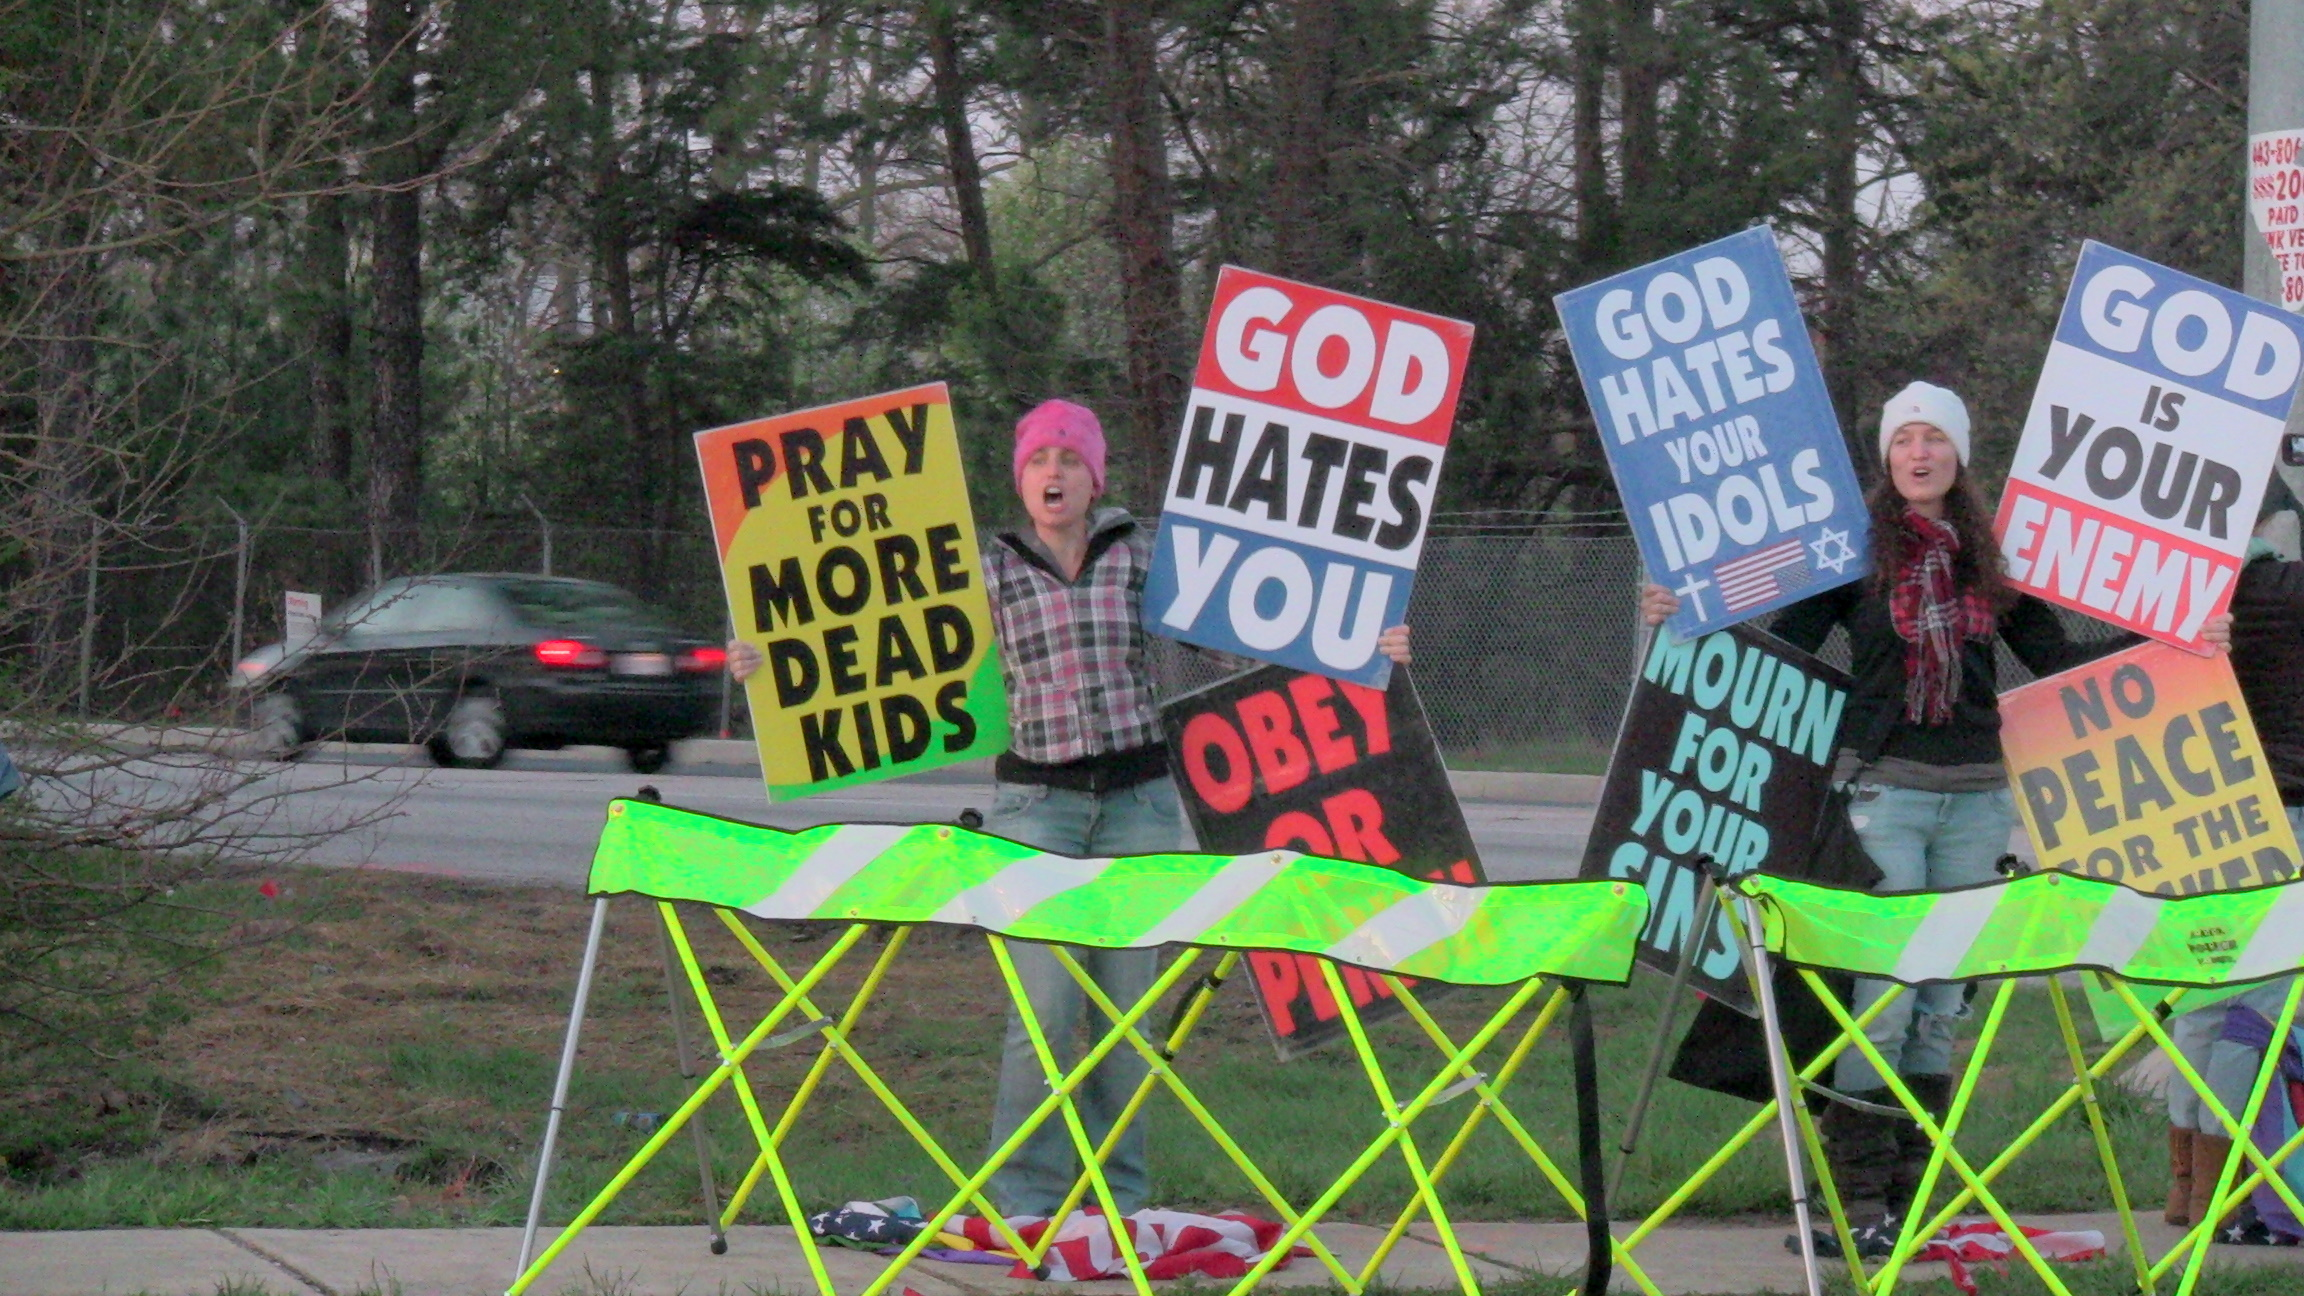 A Westboro Baptist Church Demonstrator Standing on an American Flag